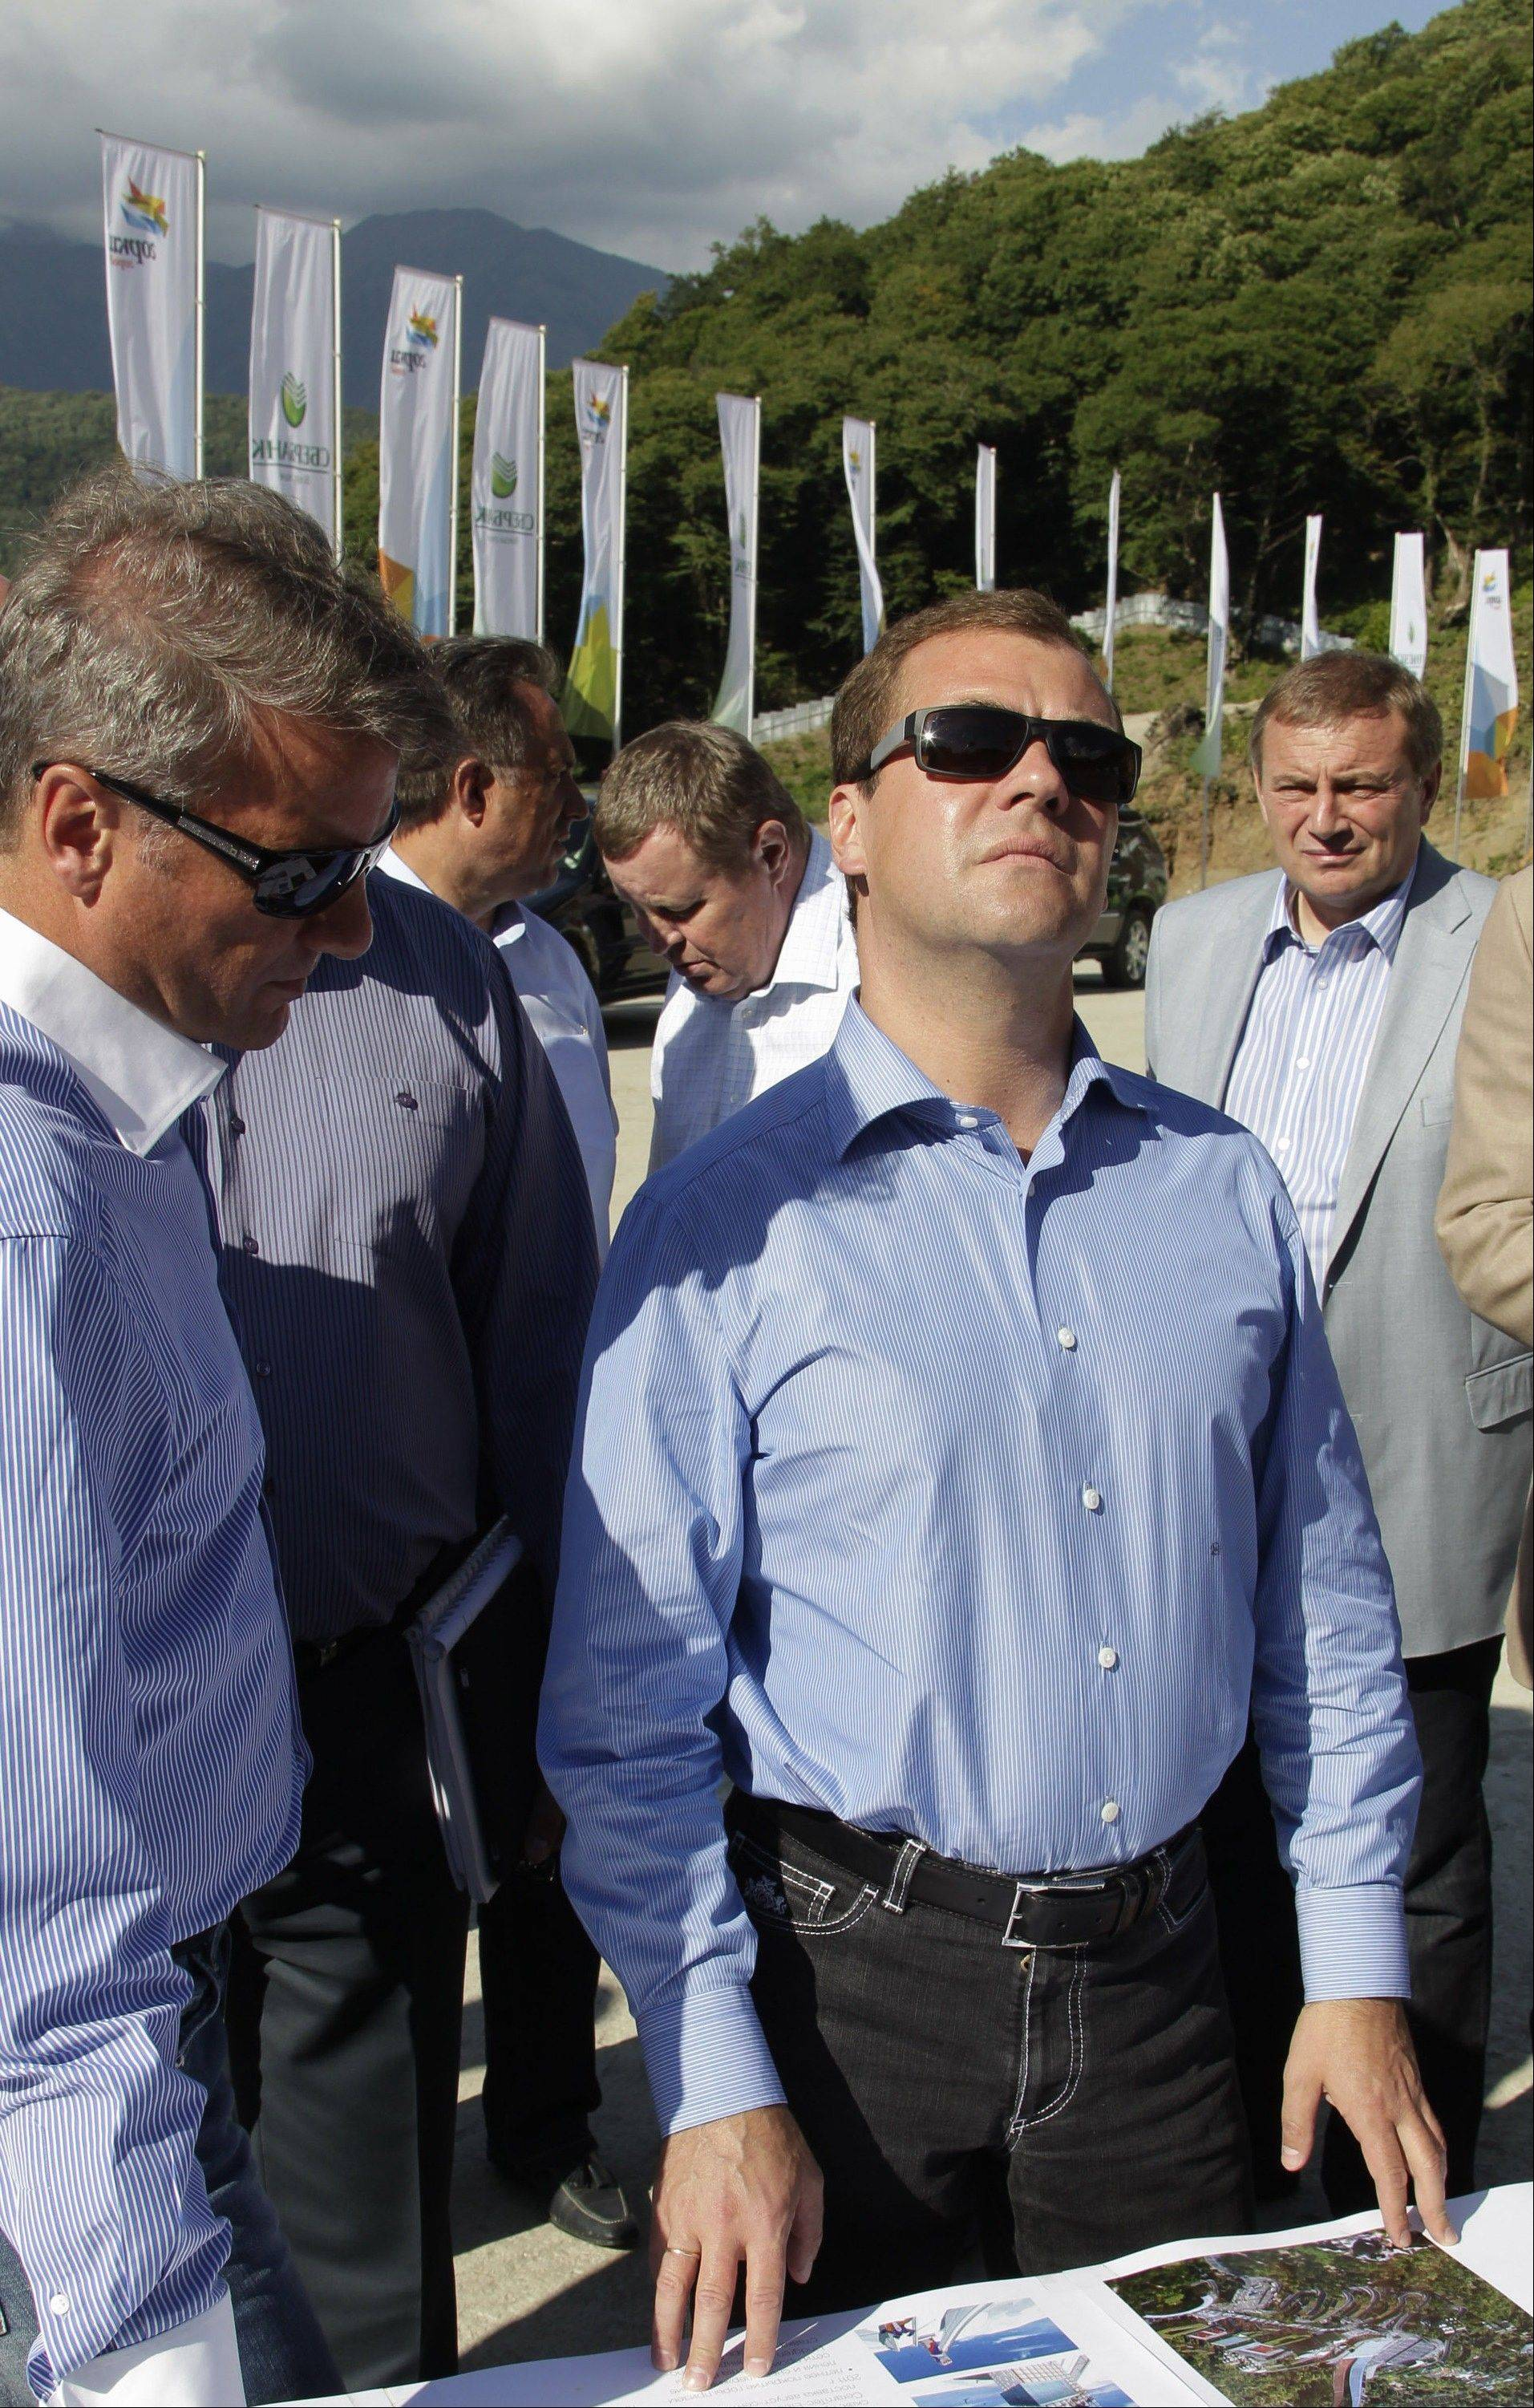 In this Aug. 23, 2011 photo, then, Russian President Dmitry Medvedev and Sberbank President German Gref, left, visit a construction site of a skiing facility for the 2014 Sochi Winter Olympics, near the Black Sea resort of Sochi, southern Russia.